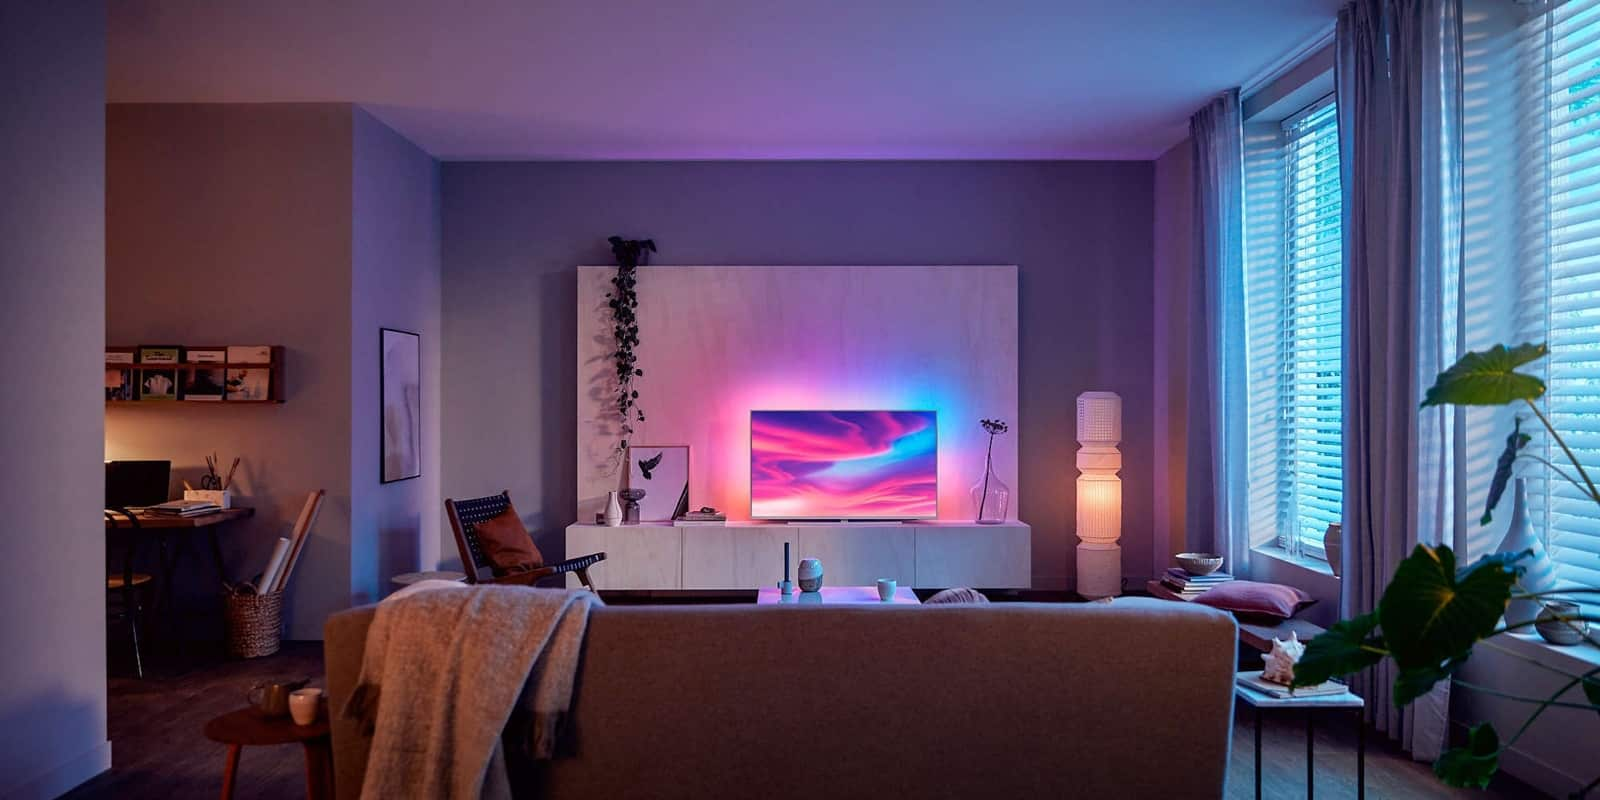 Migliore android TV 4K Led Philips 7300 series recensione